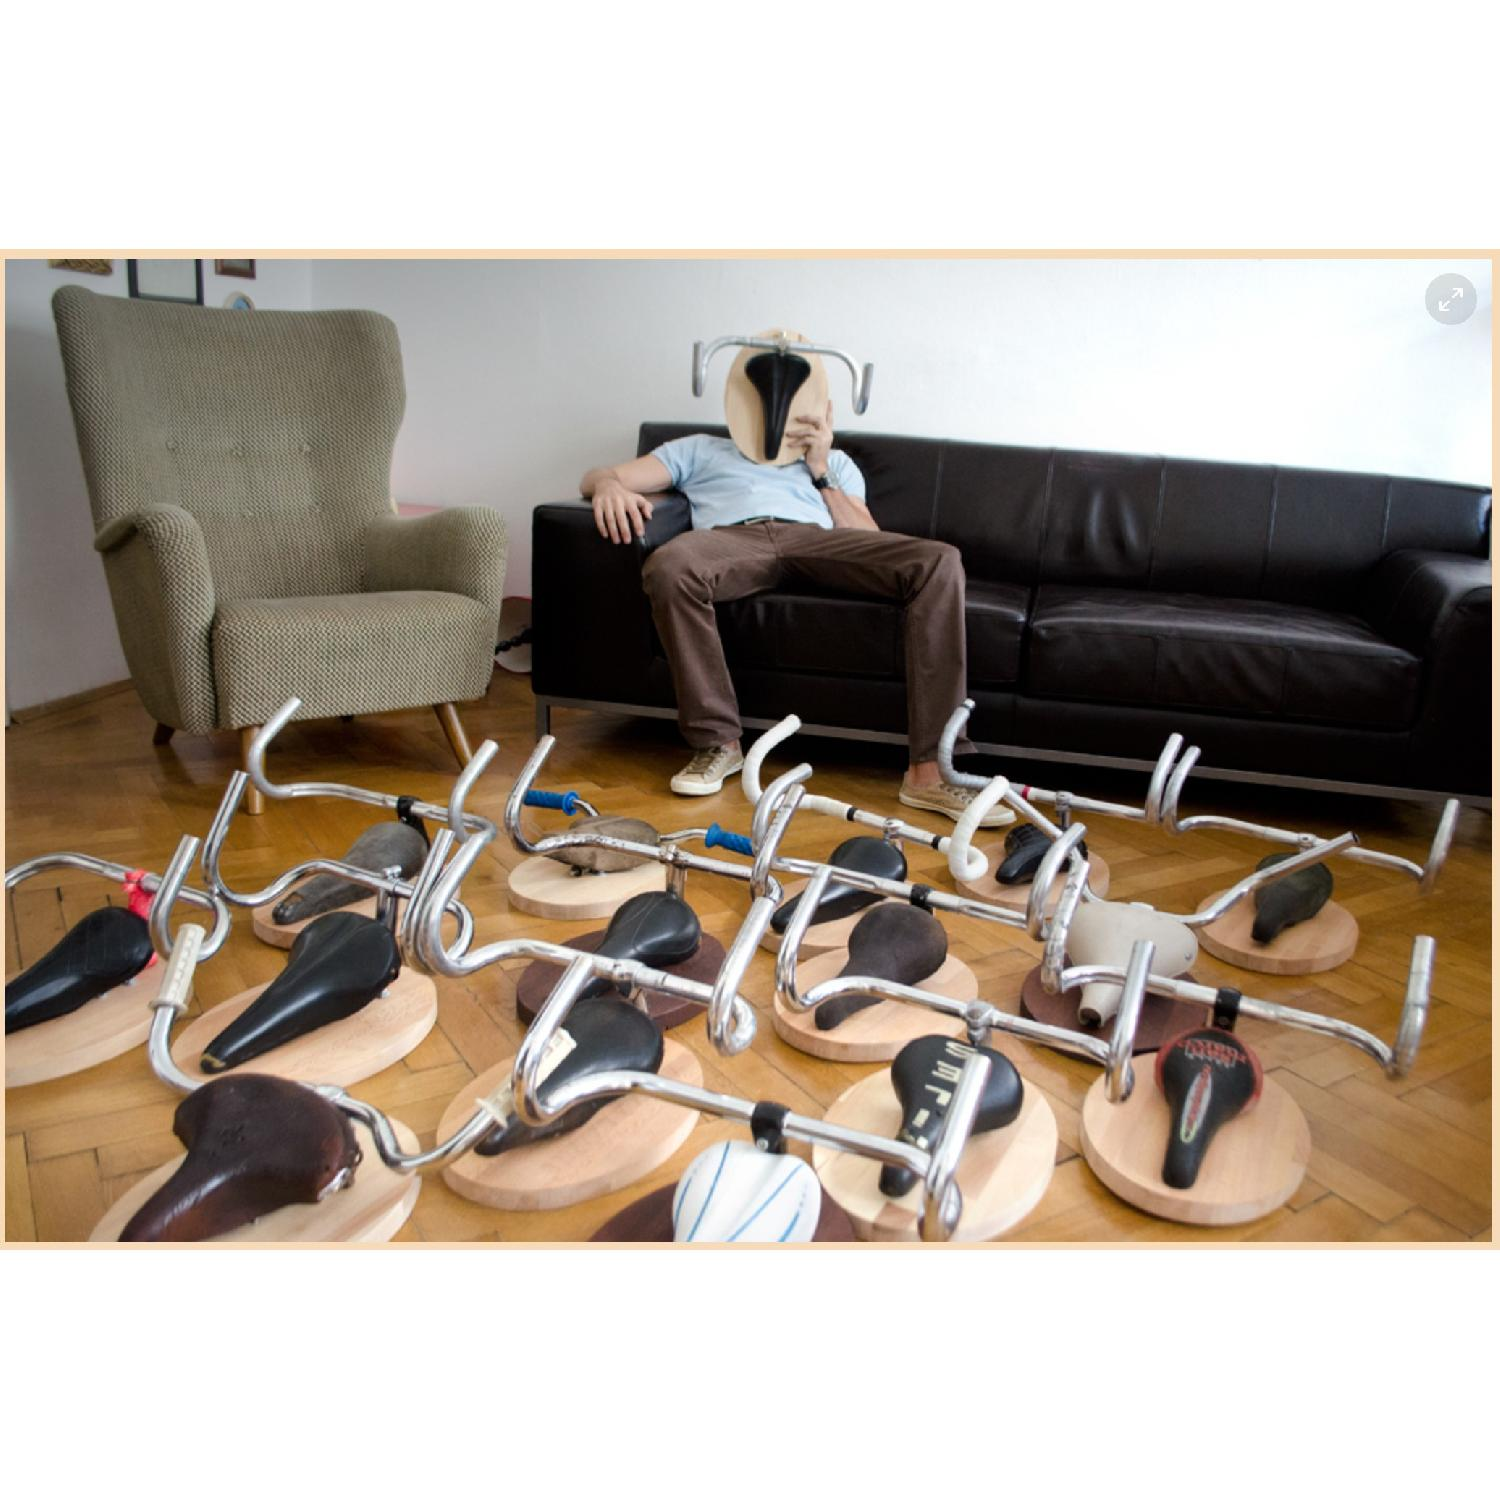 Andreas Schieger Euro Wall Art Bicycle Hangers - image-2